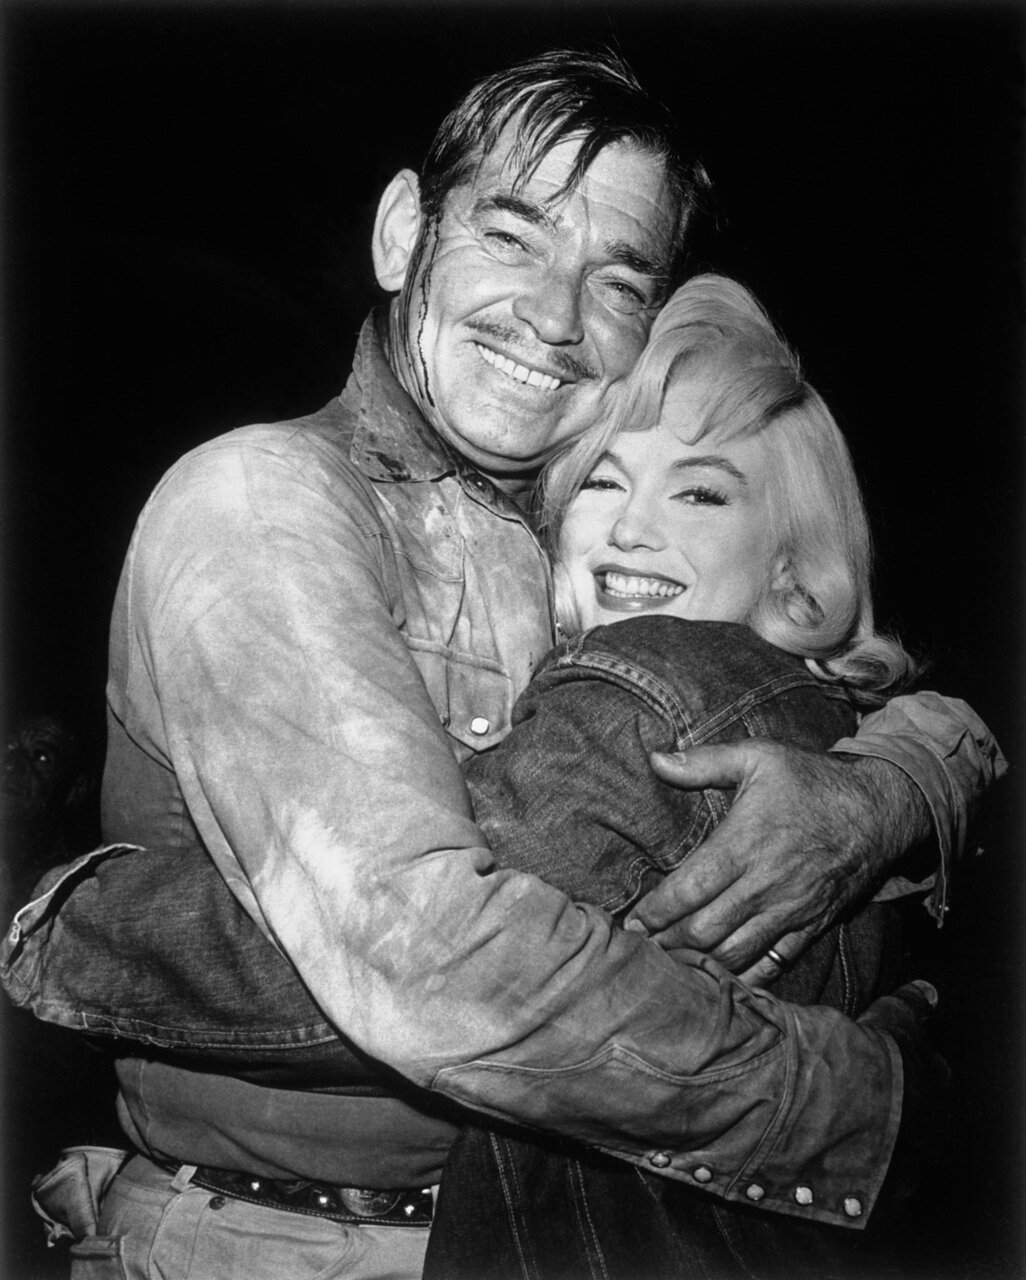 Actor Clark Gable Embracing Actress Marilyn Monroe